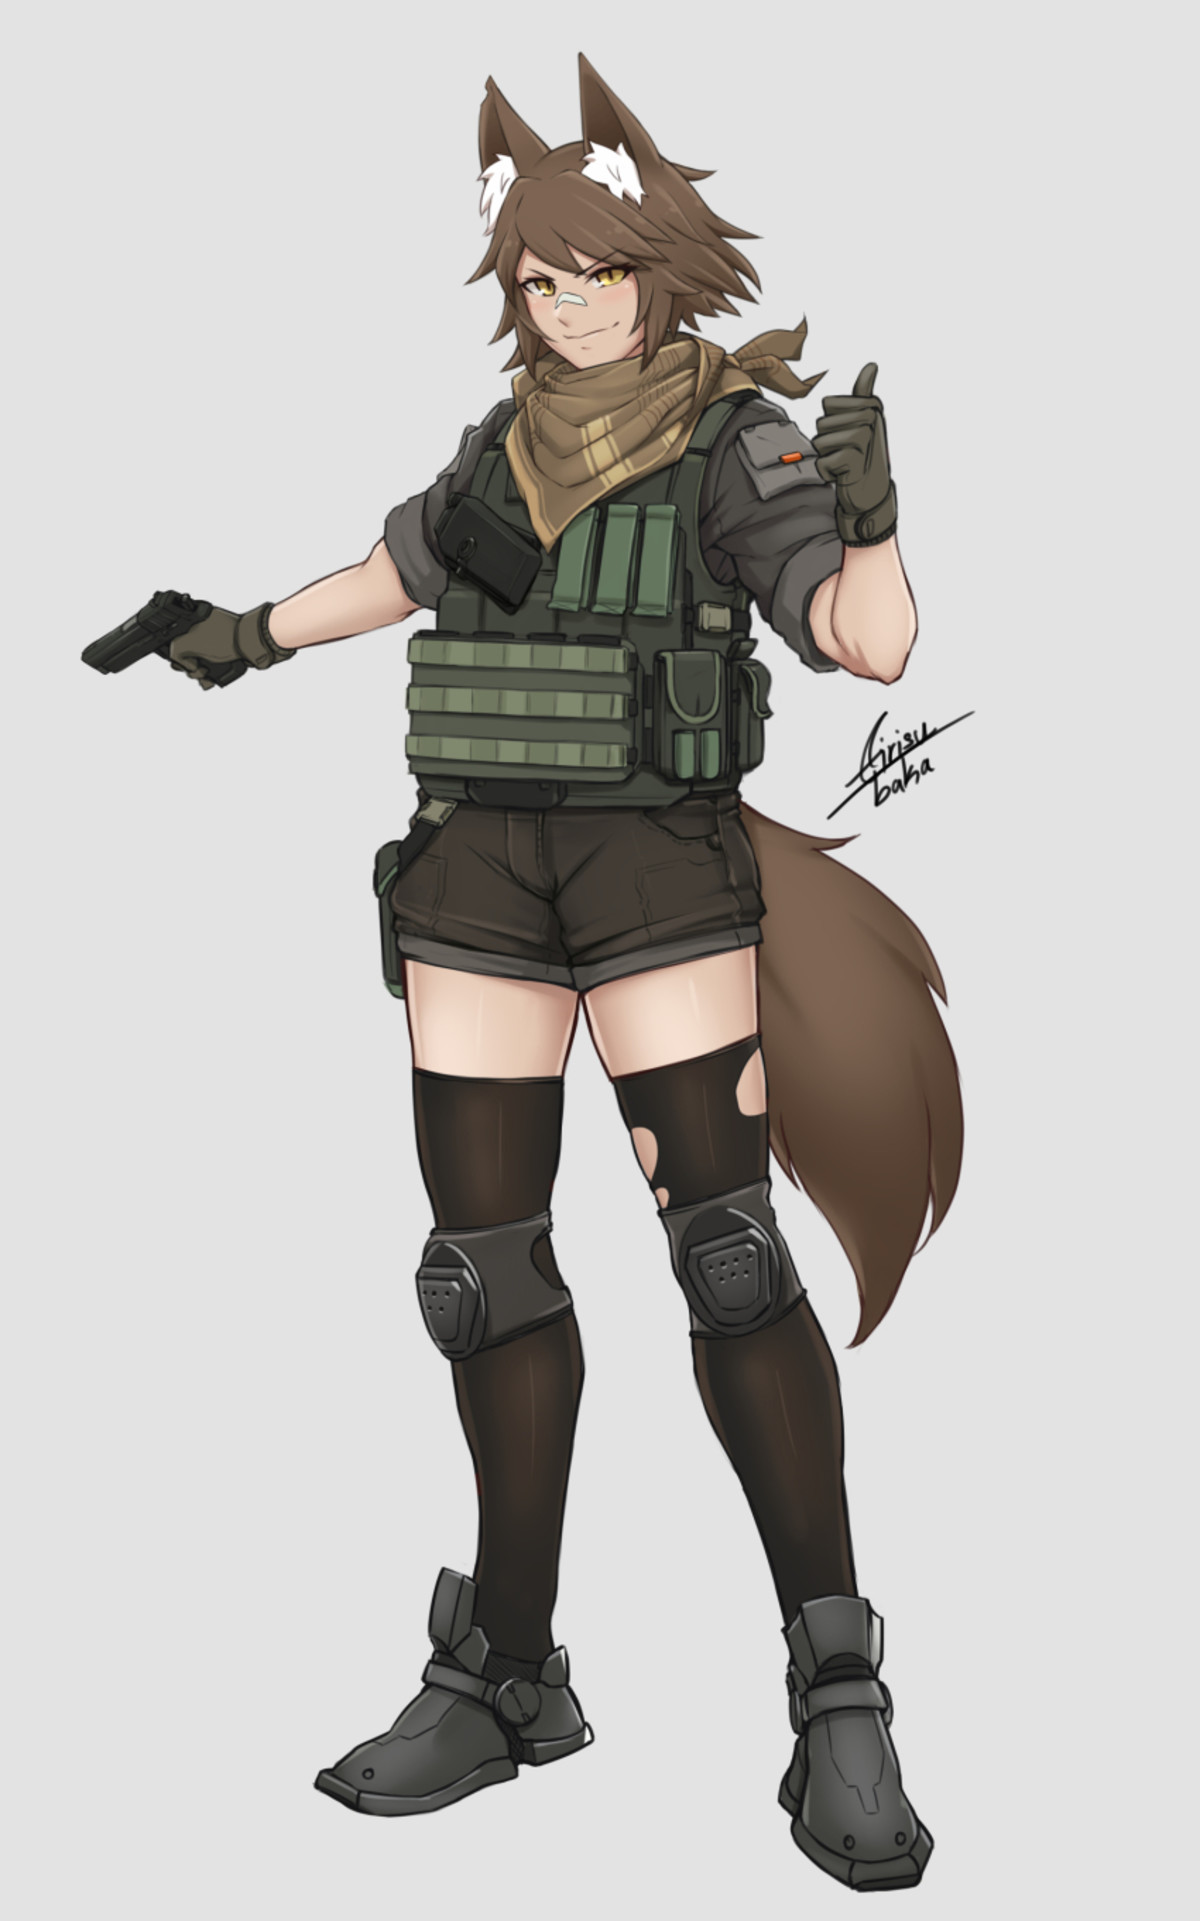 Tactical Woof. https://www.pixiv.net/member.php?id=10701161 Since I thought of it later, Tactic-awoo-l.. Posted this on another post, but I feel if we're talking about tactical woofs, then it should apply here as well. Sauce is Lycan Operators - Robert Chew